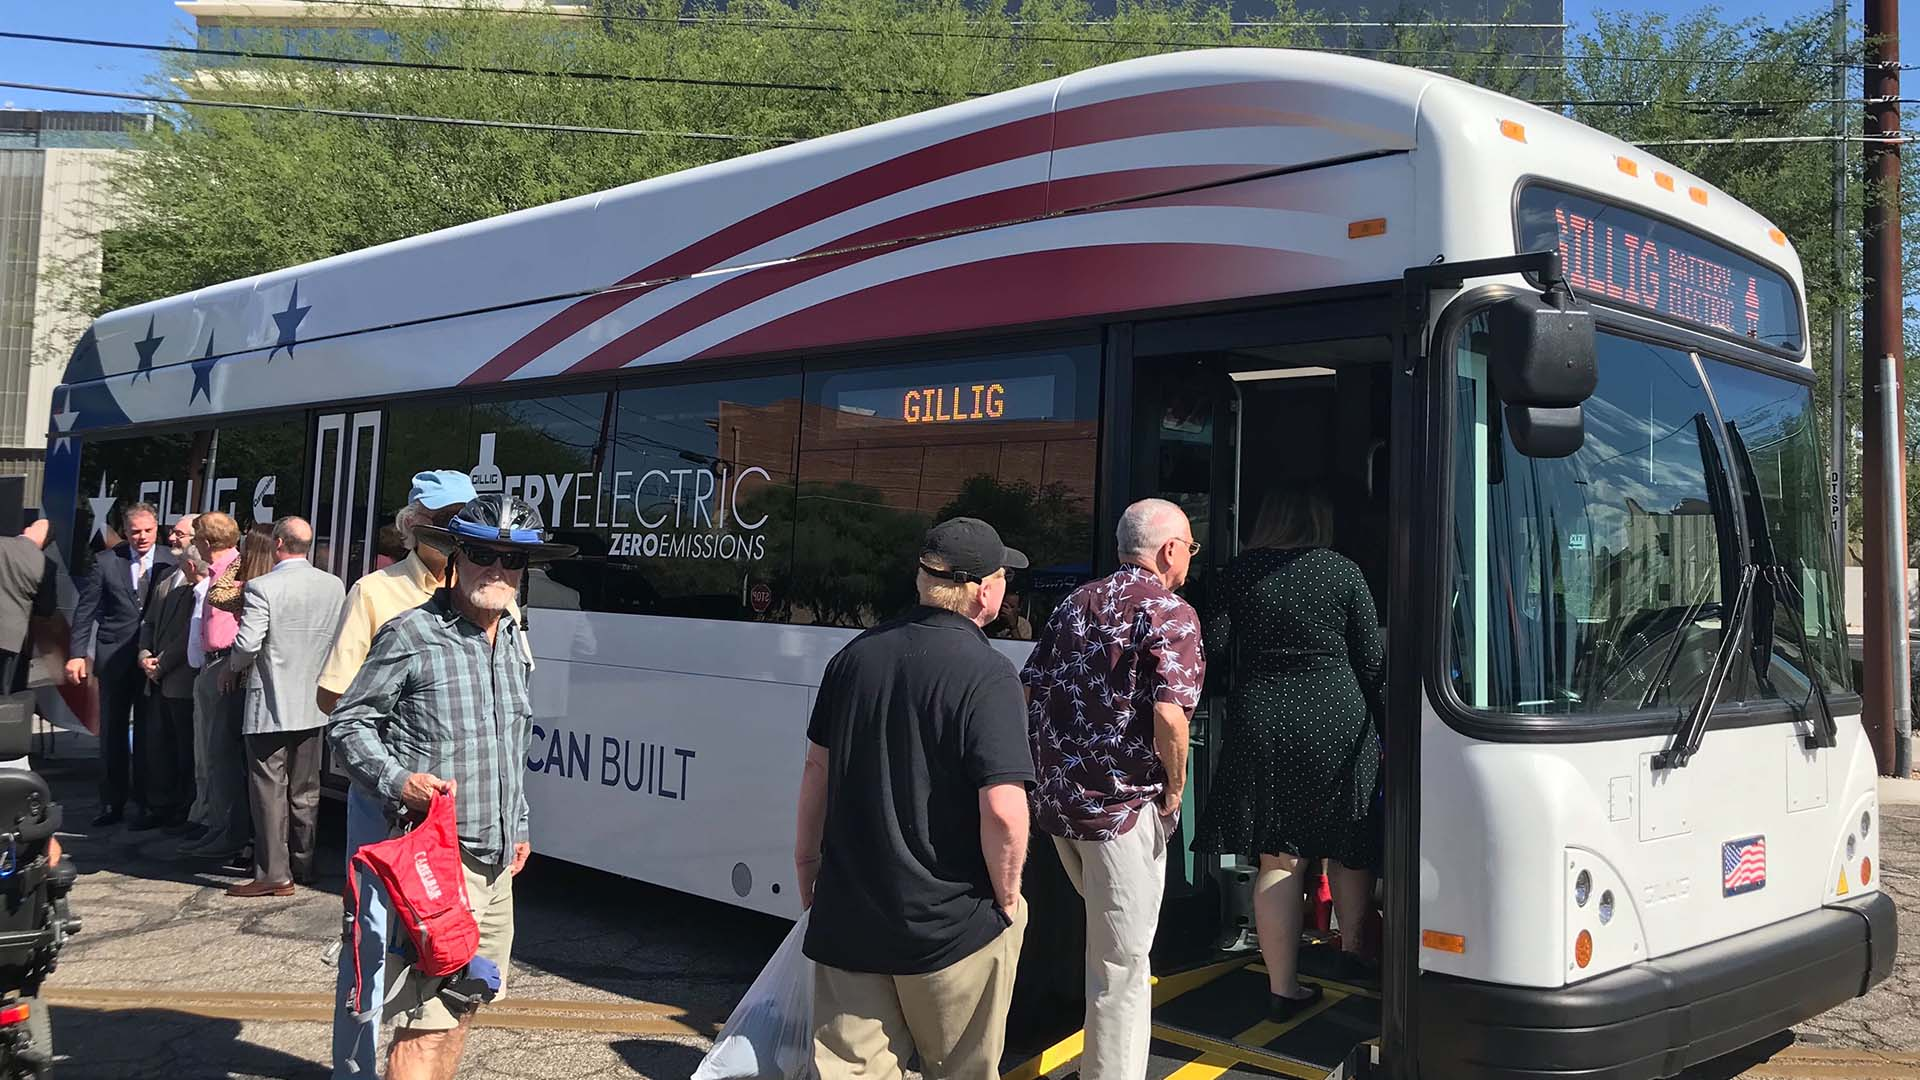 An electric bus being showcased in front of the Tucson Electric Power headquarters on Sept. 18, 2019. The city of Tucson plans to lease a bus from the California-based Gillig for a pilot program beginning next spring.